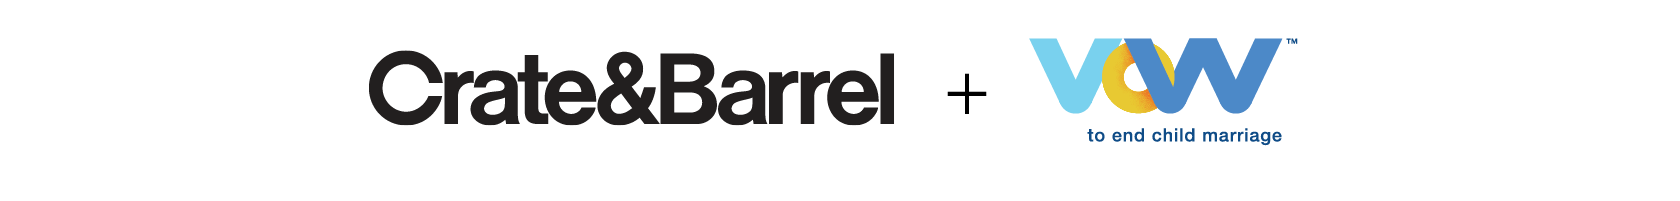 Crate and Barrel Vow to end child marriage